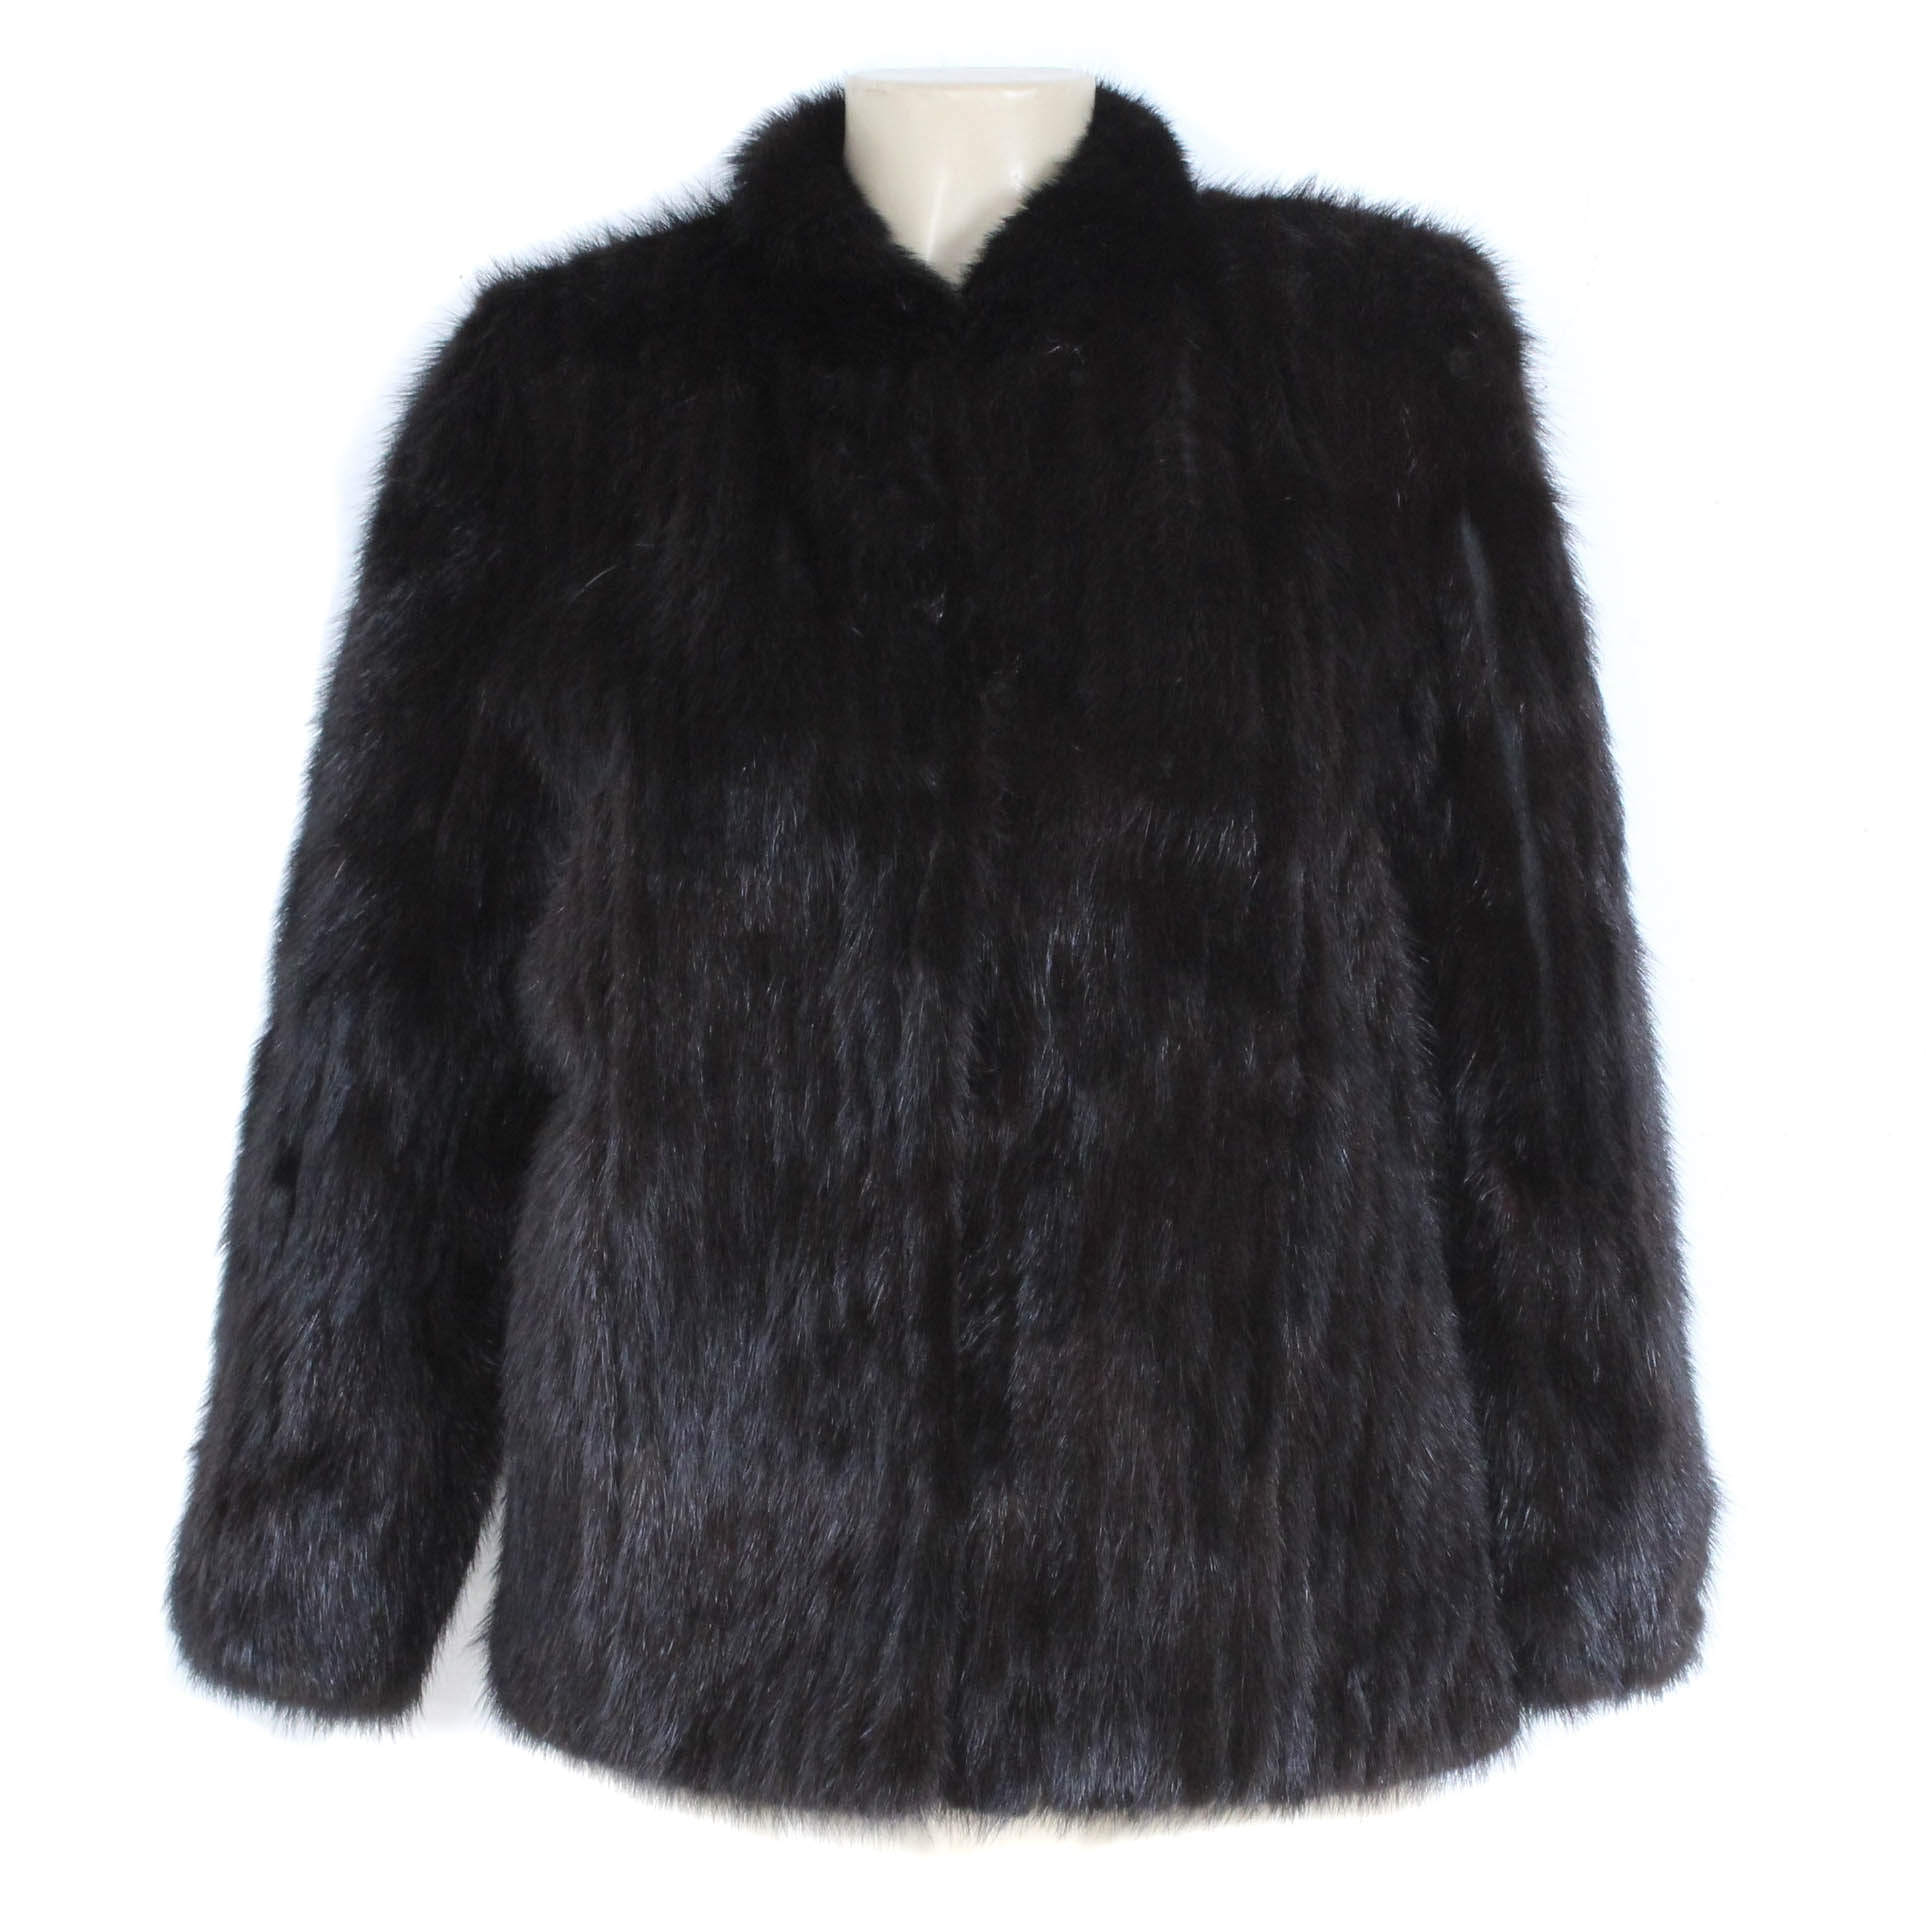 Graggs Dyed Black Corded Mink Fur Jacket